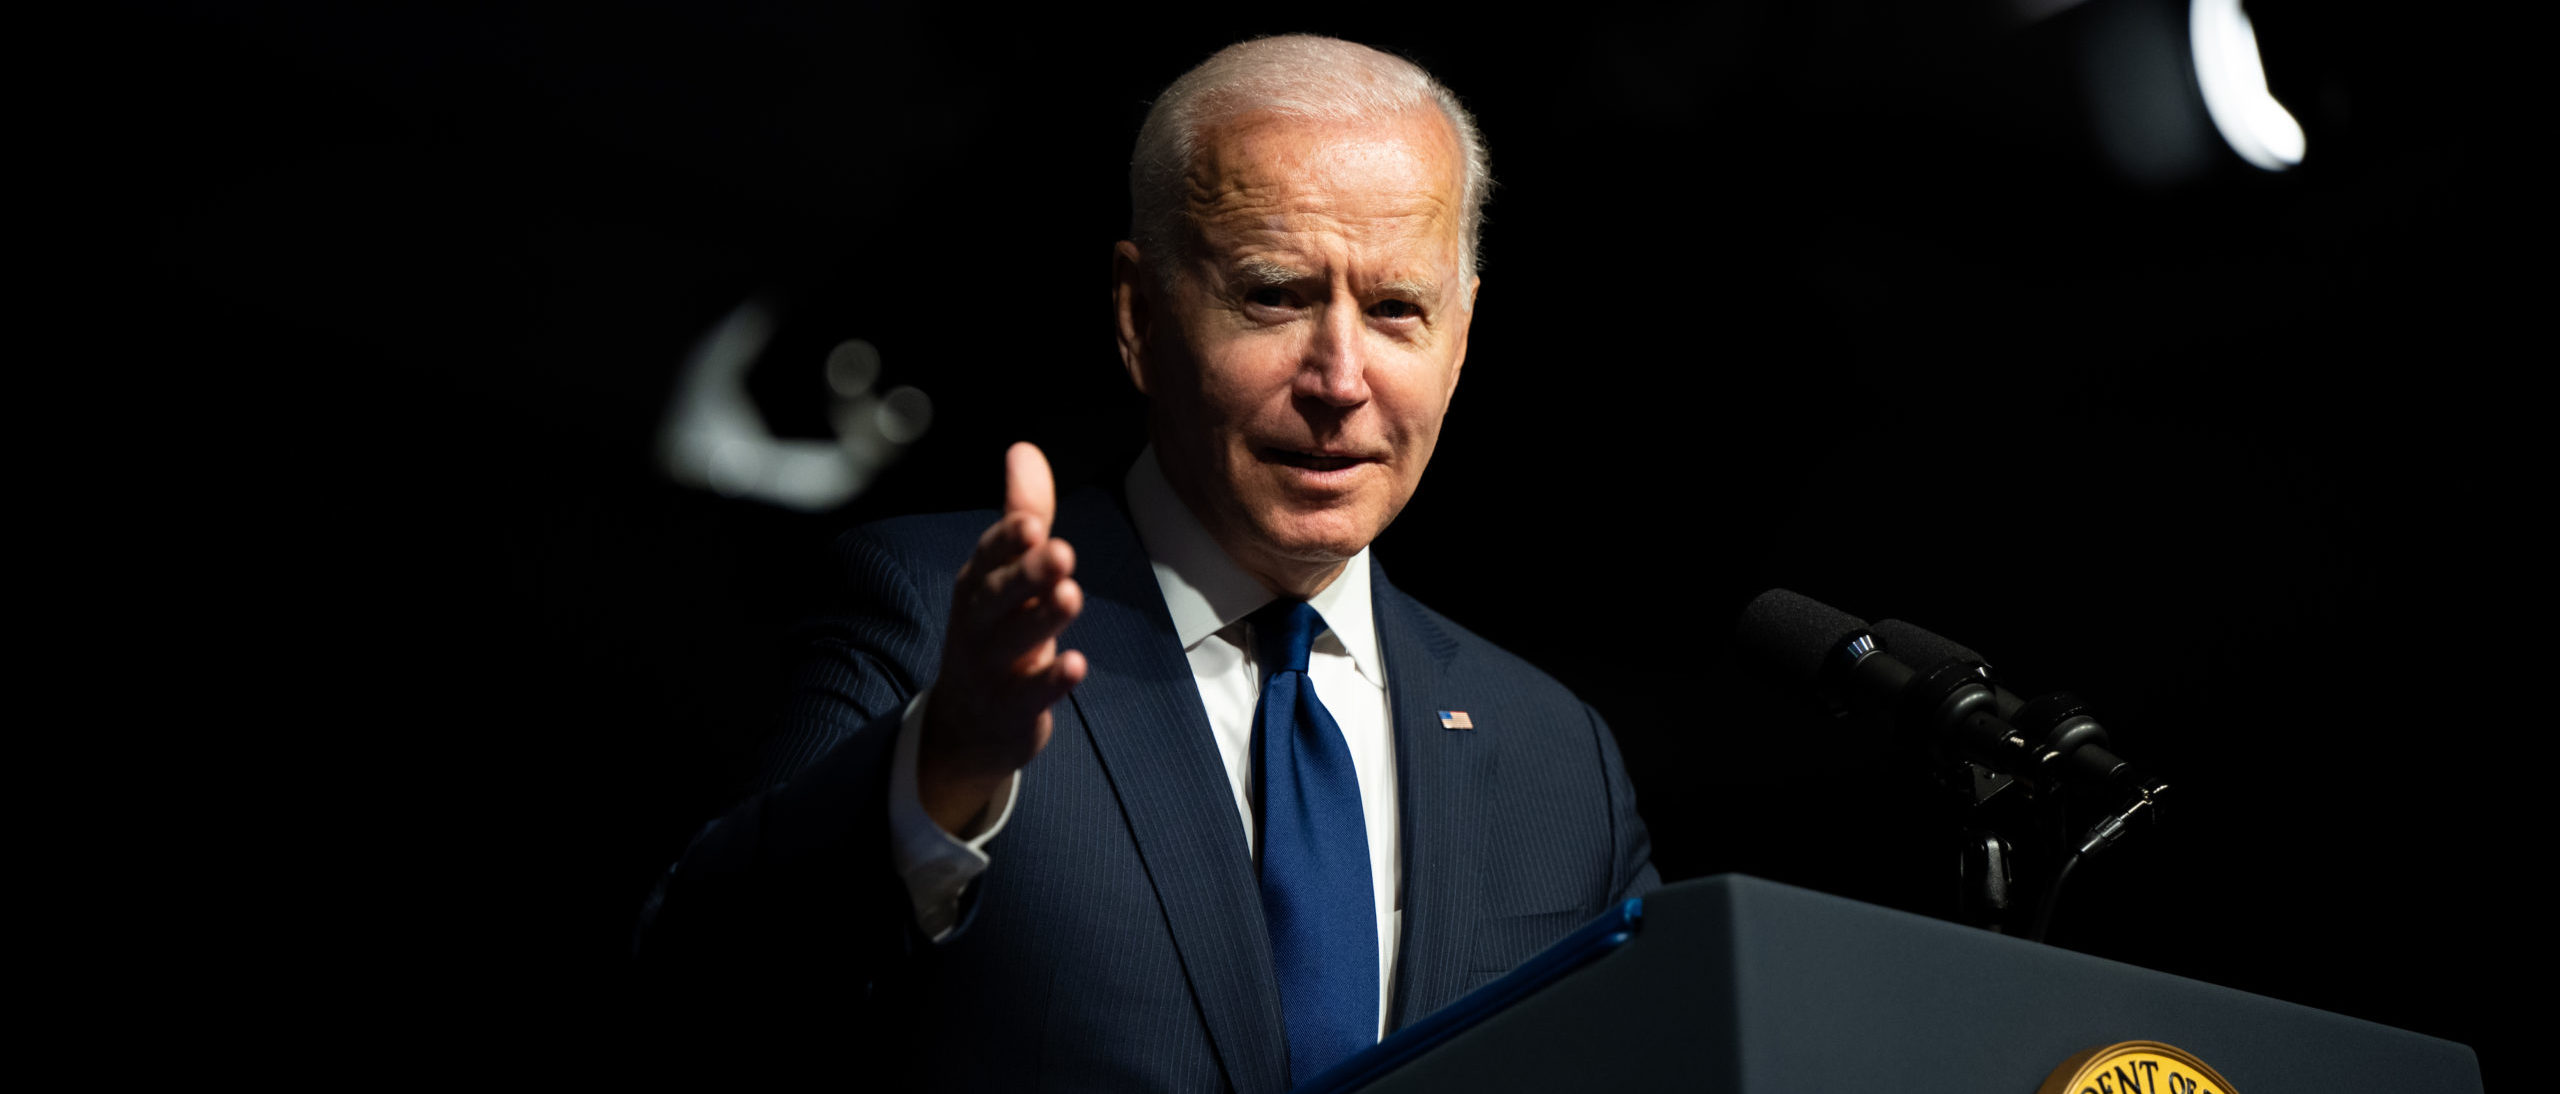 TULSA, OKLAHOMA - JUNE 01: U.S. President Joe Biden speaks at a rally during commemorations of the 100th anniversary of the Tulsa Race Massacre on June 01, 2021 in Tulsa, Oklahoma. (Photo by Brandon Bell/Getty Images)